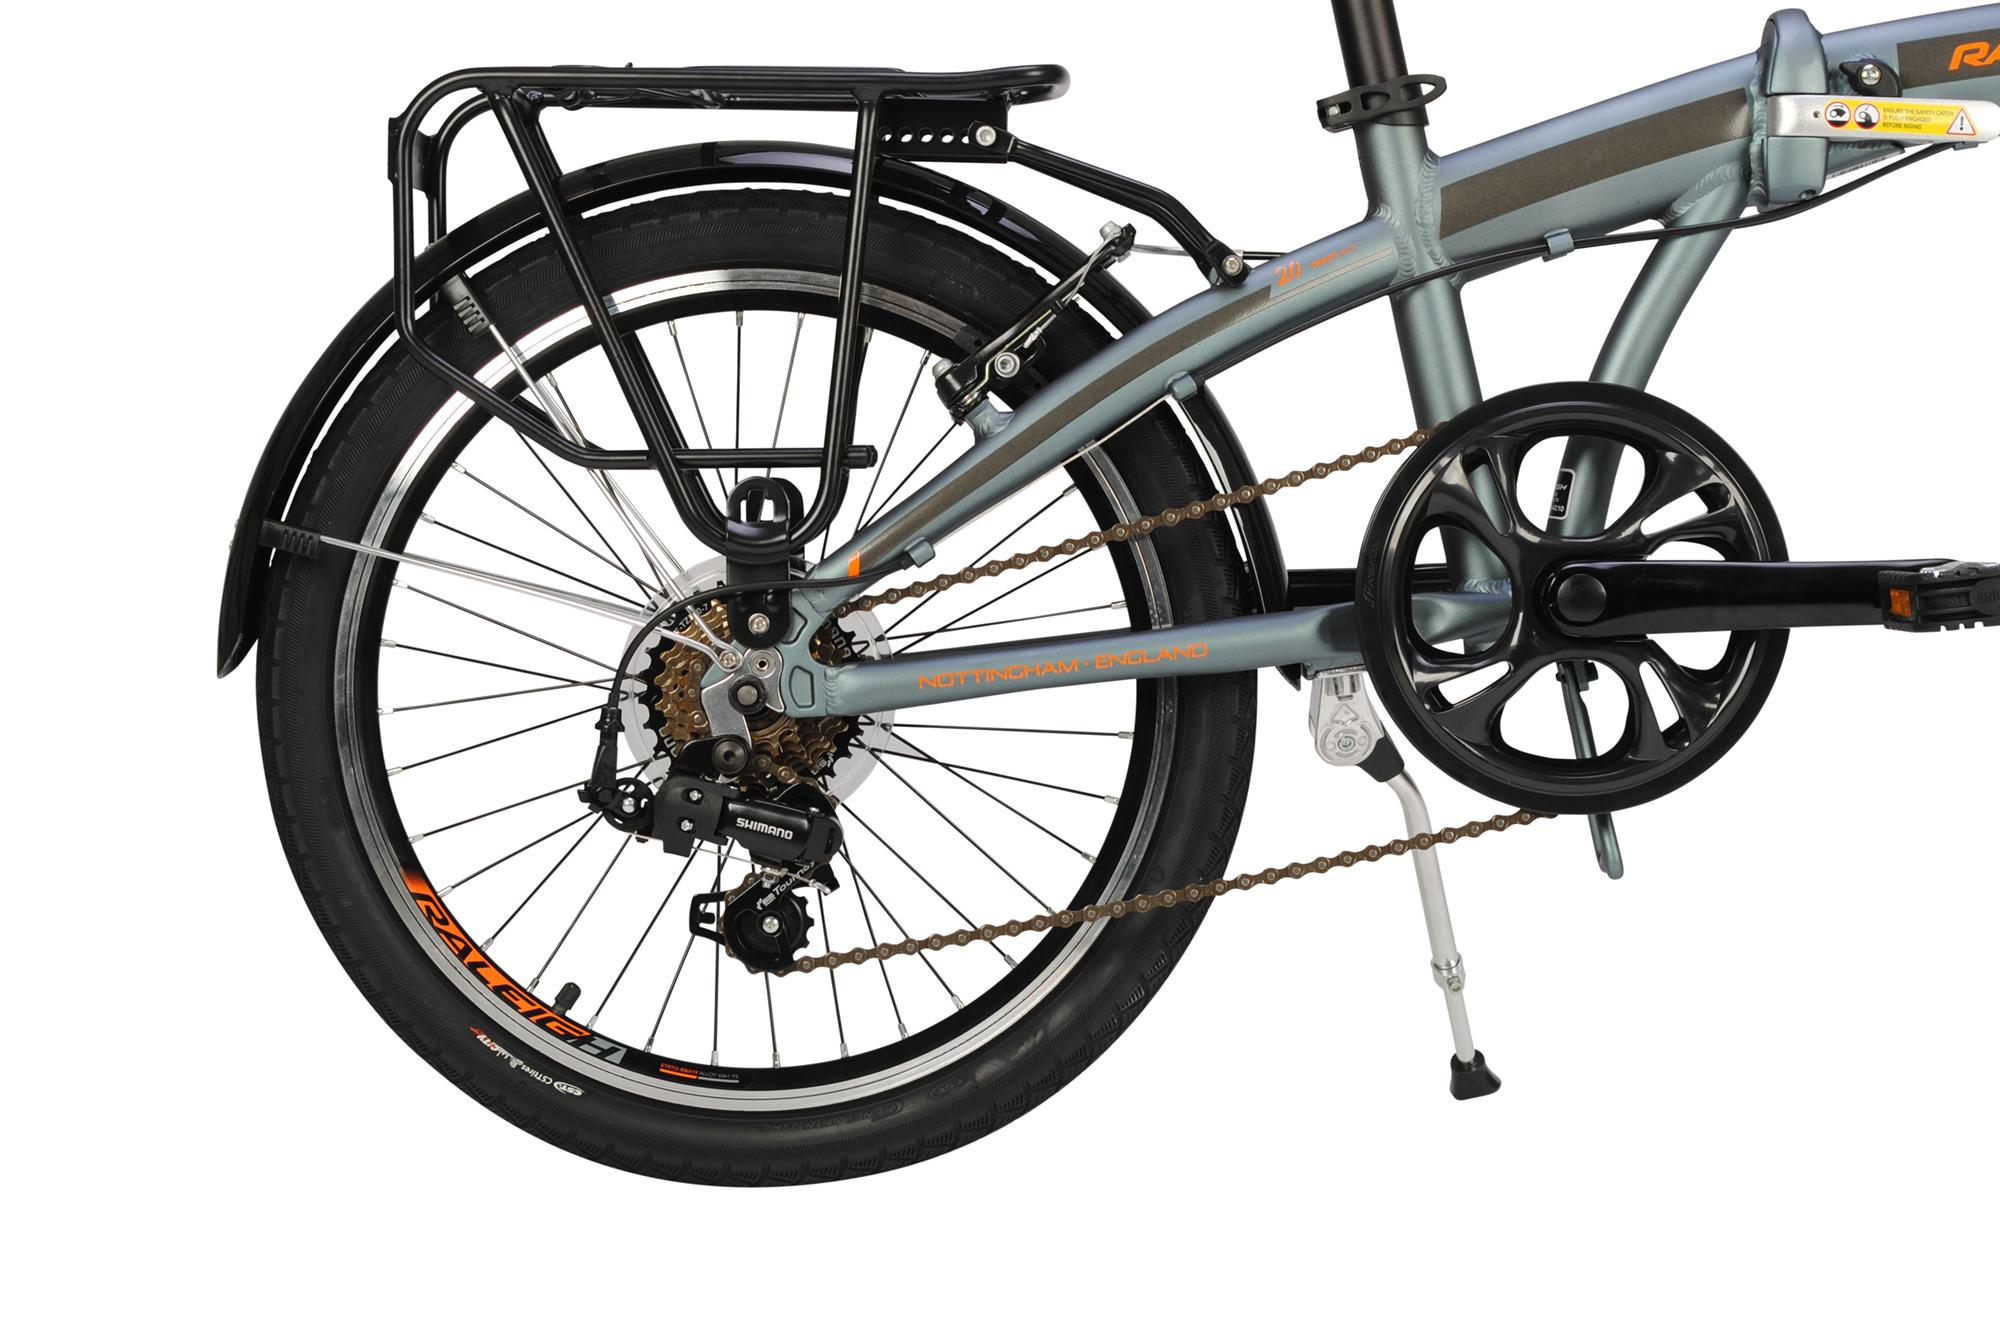 Luggage rack on the Raleigh Stowaway folding bike